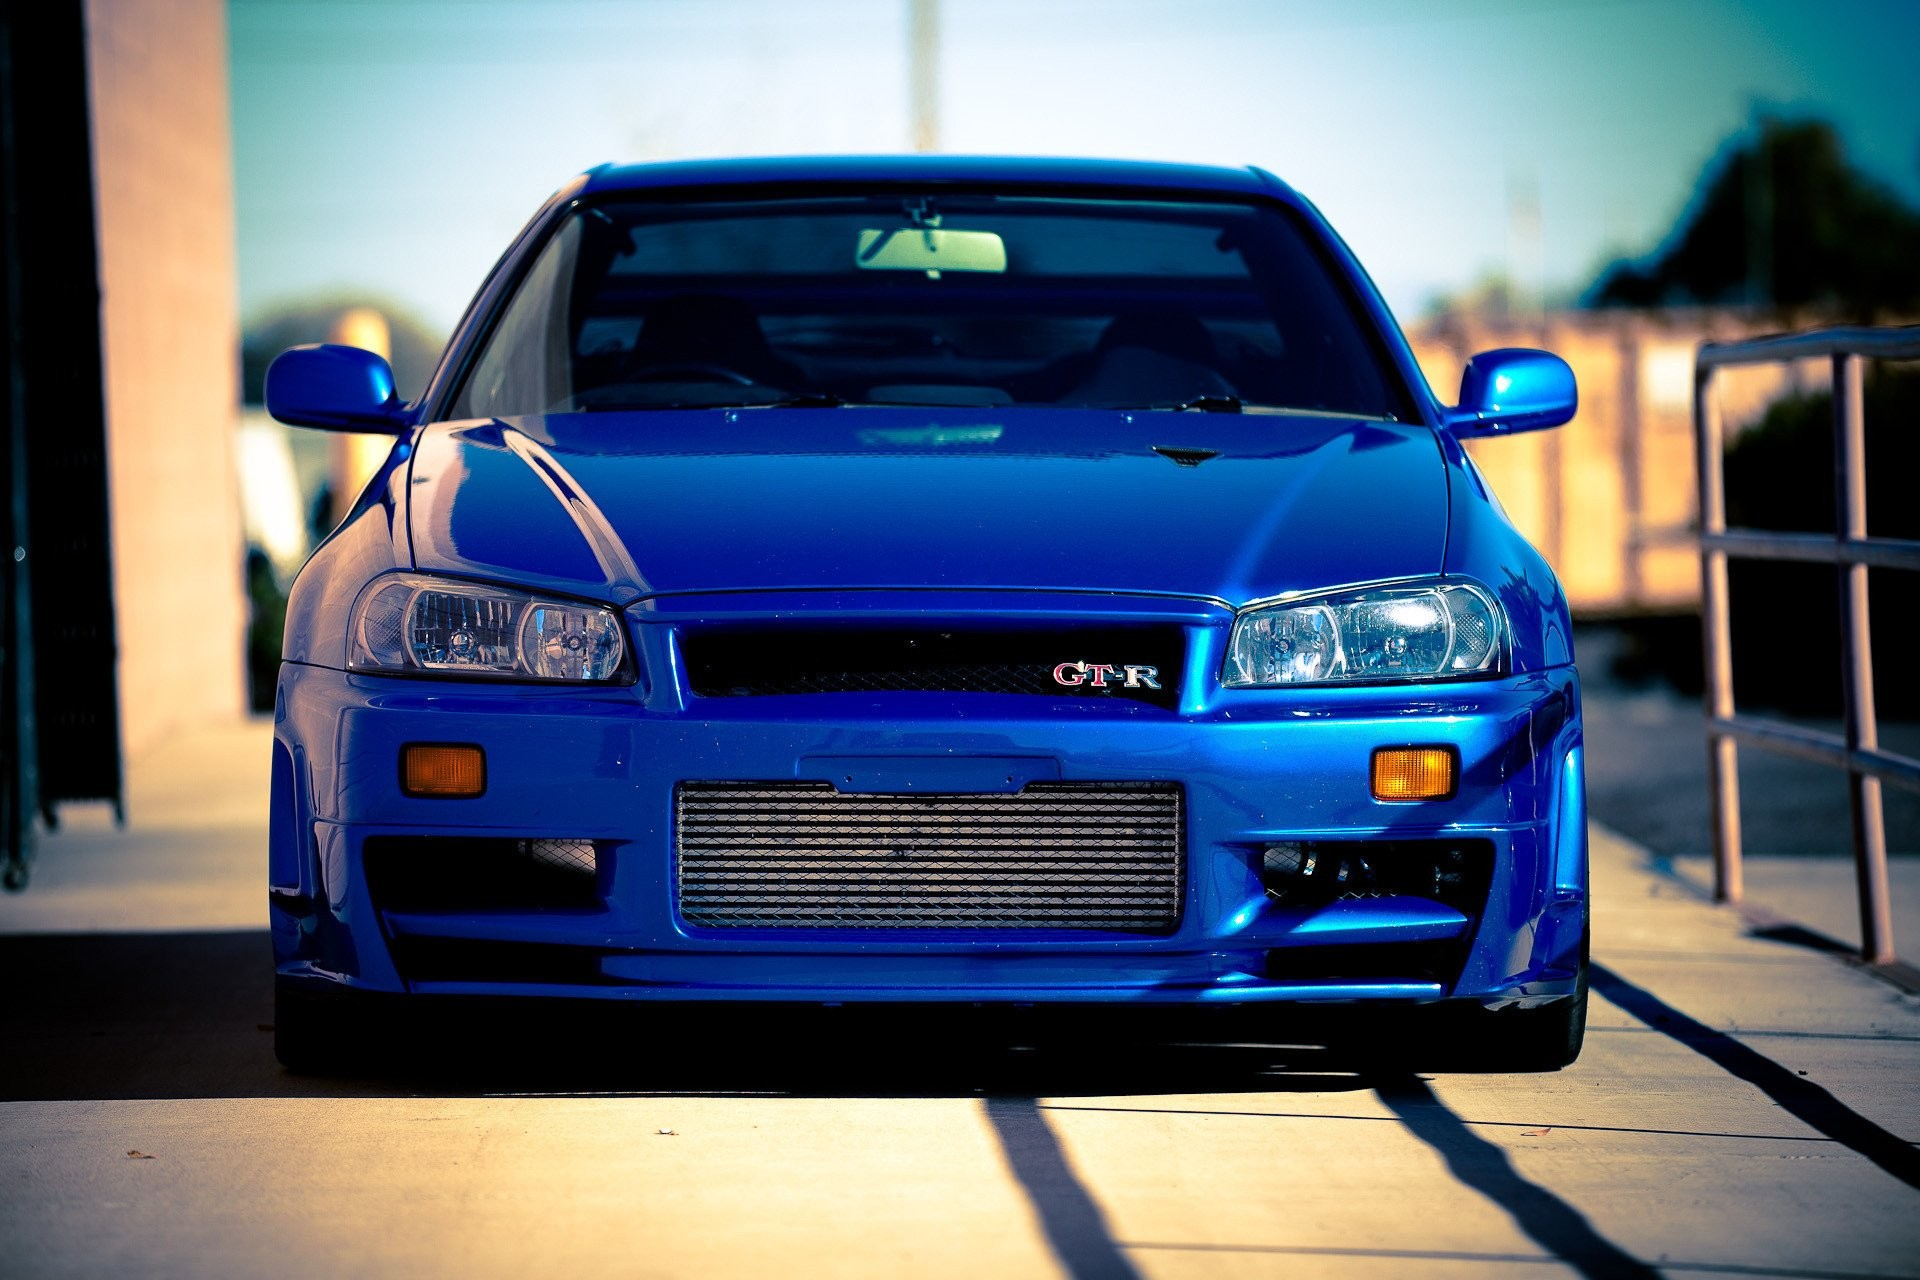 Res: 1920x1280, Nissan Skyline GT-R Wallpapers 14 - 1920 X 1280